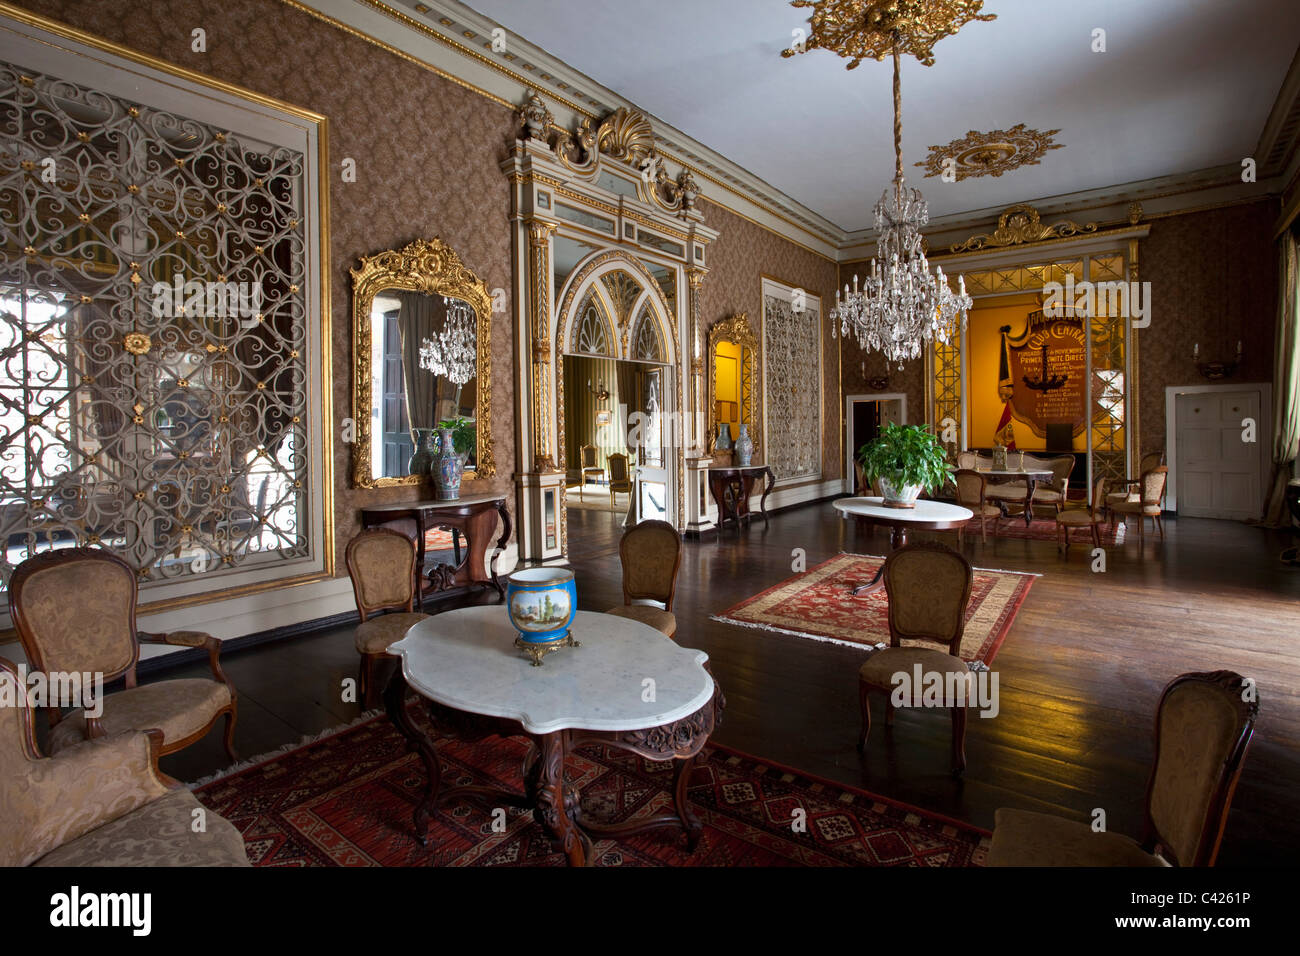 Peru, Trujillo, Colonial room in El Palacio de Iturregui, seat of the Club Central de Trujillo. - Stock Image